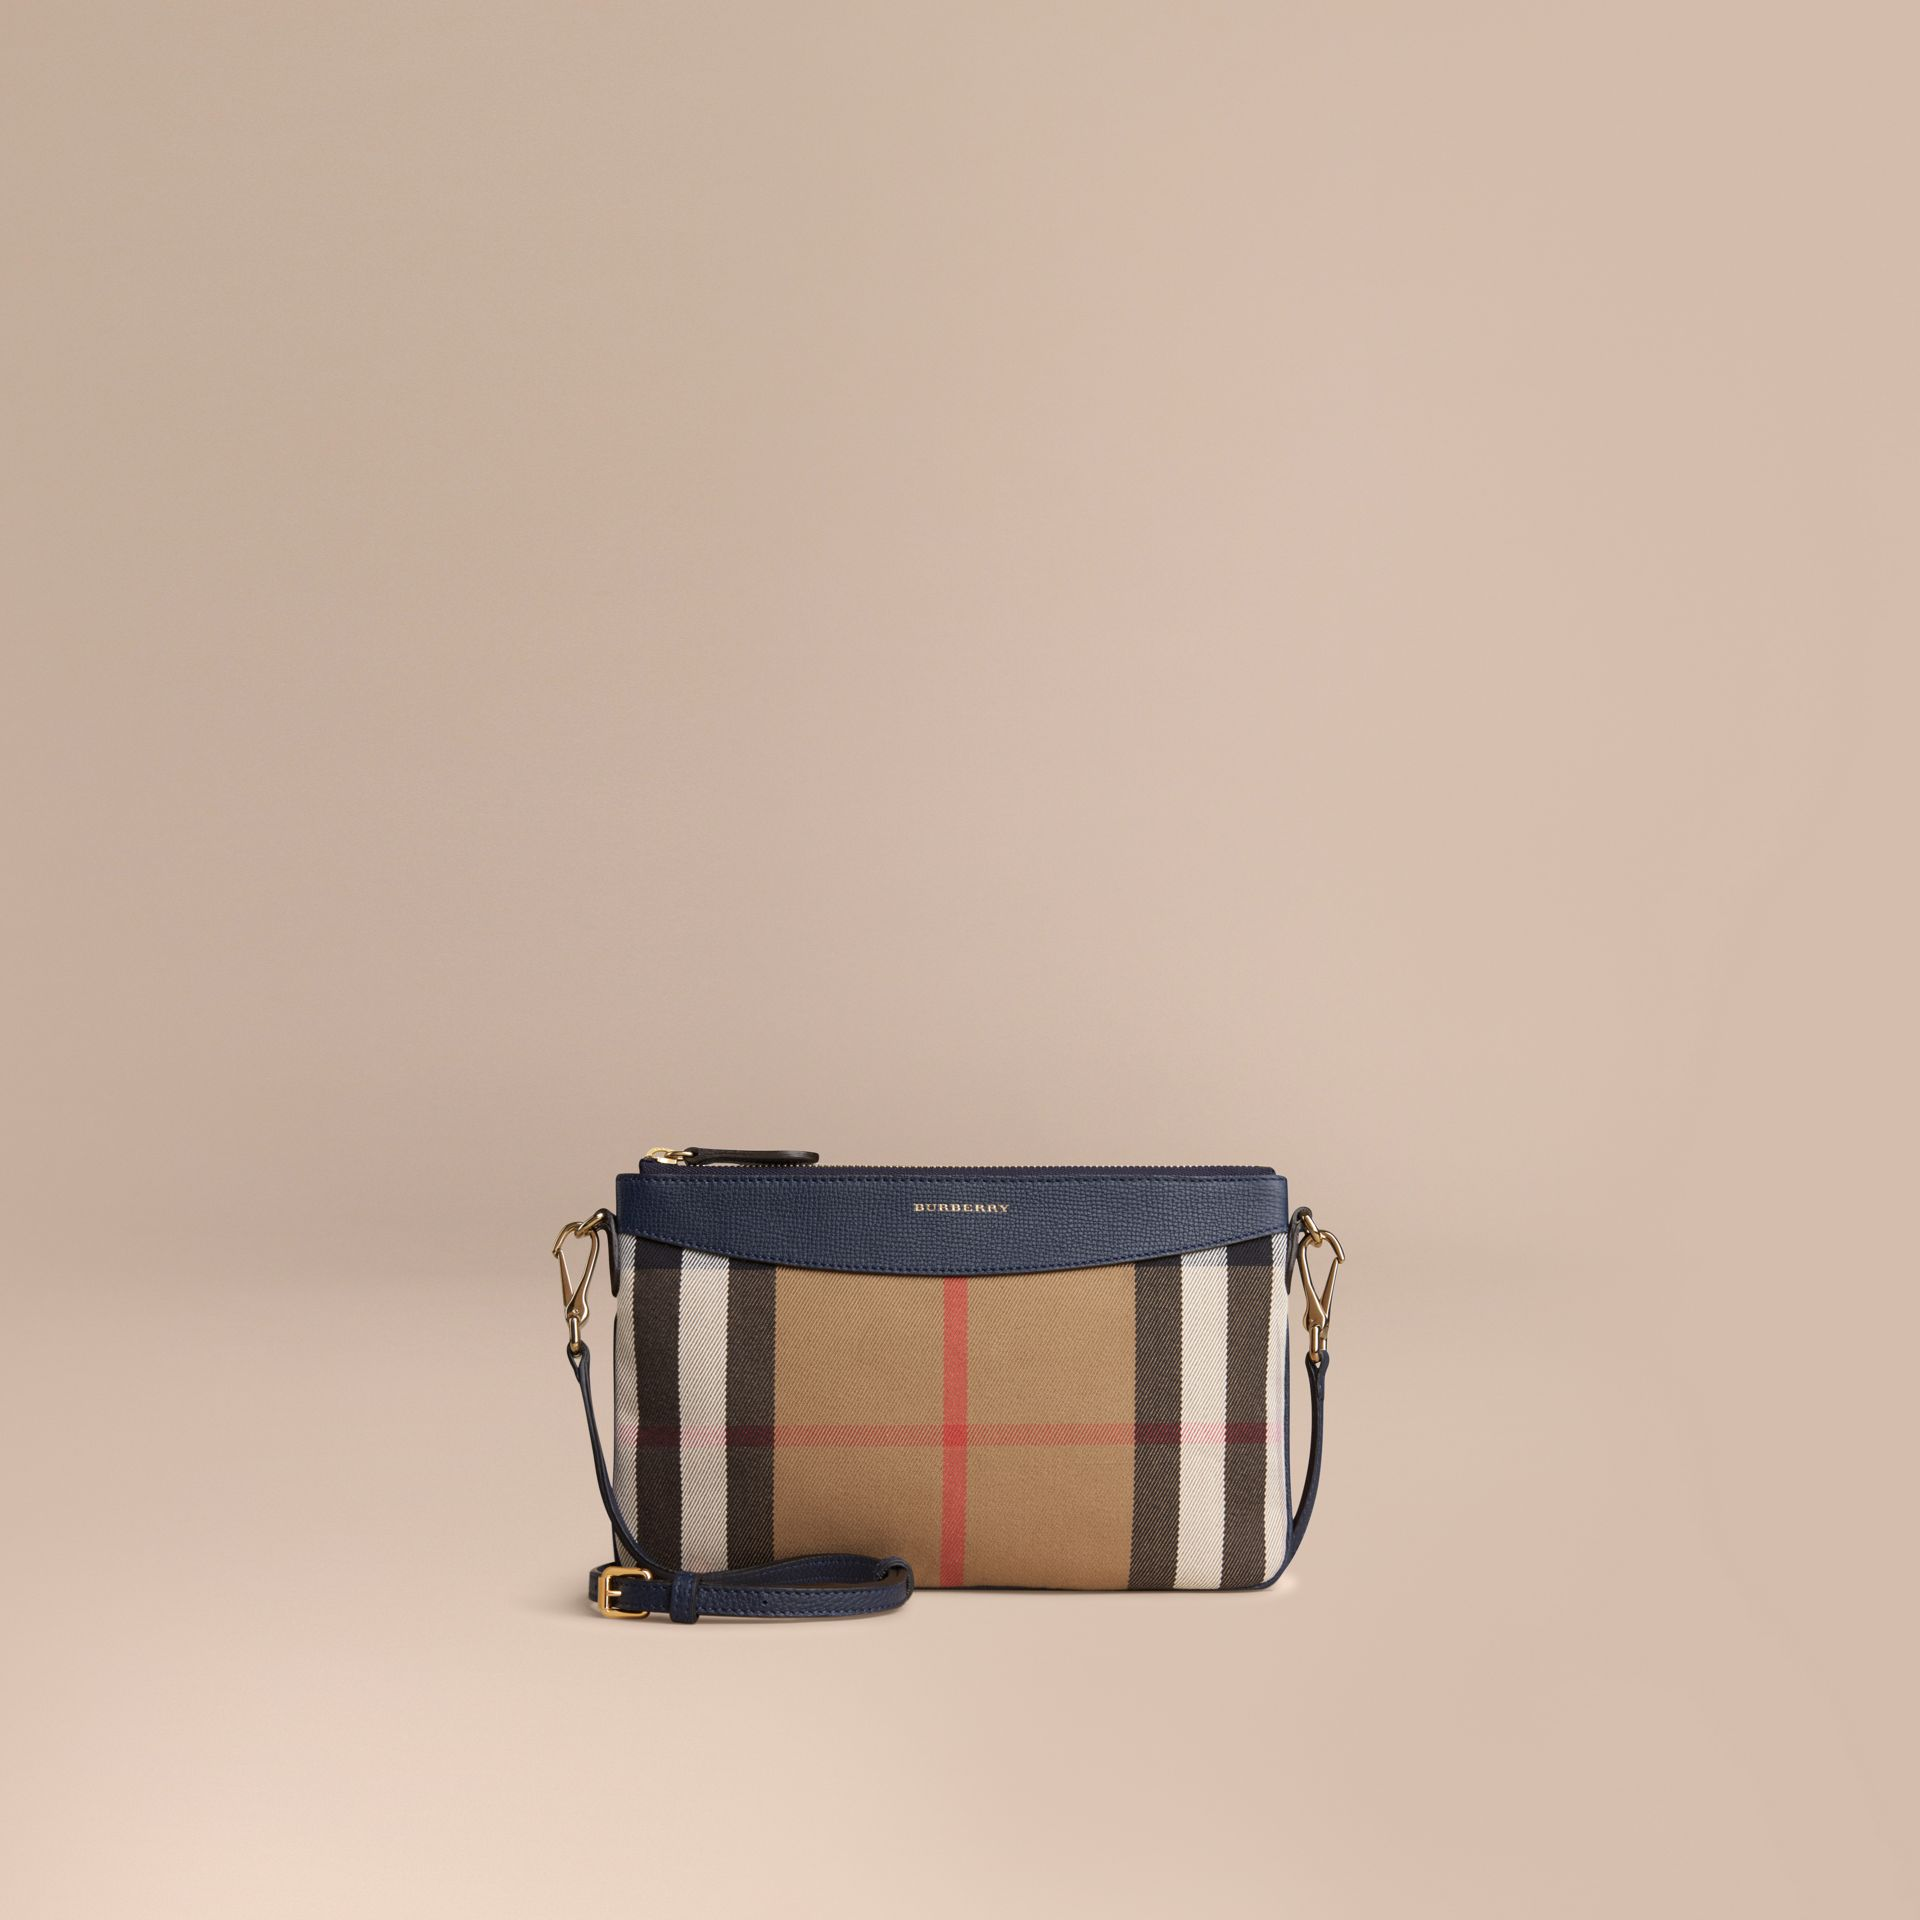 House Check and Leather Clutch Bag in Ink Blue - Women | Burberry - gallery image 7